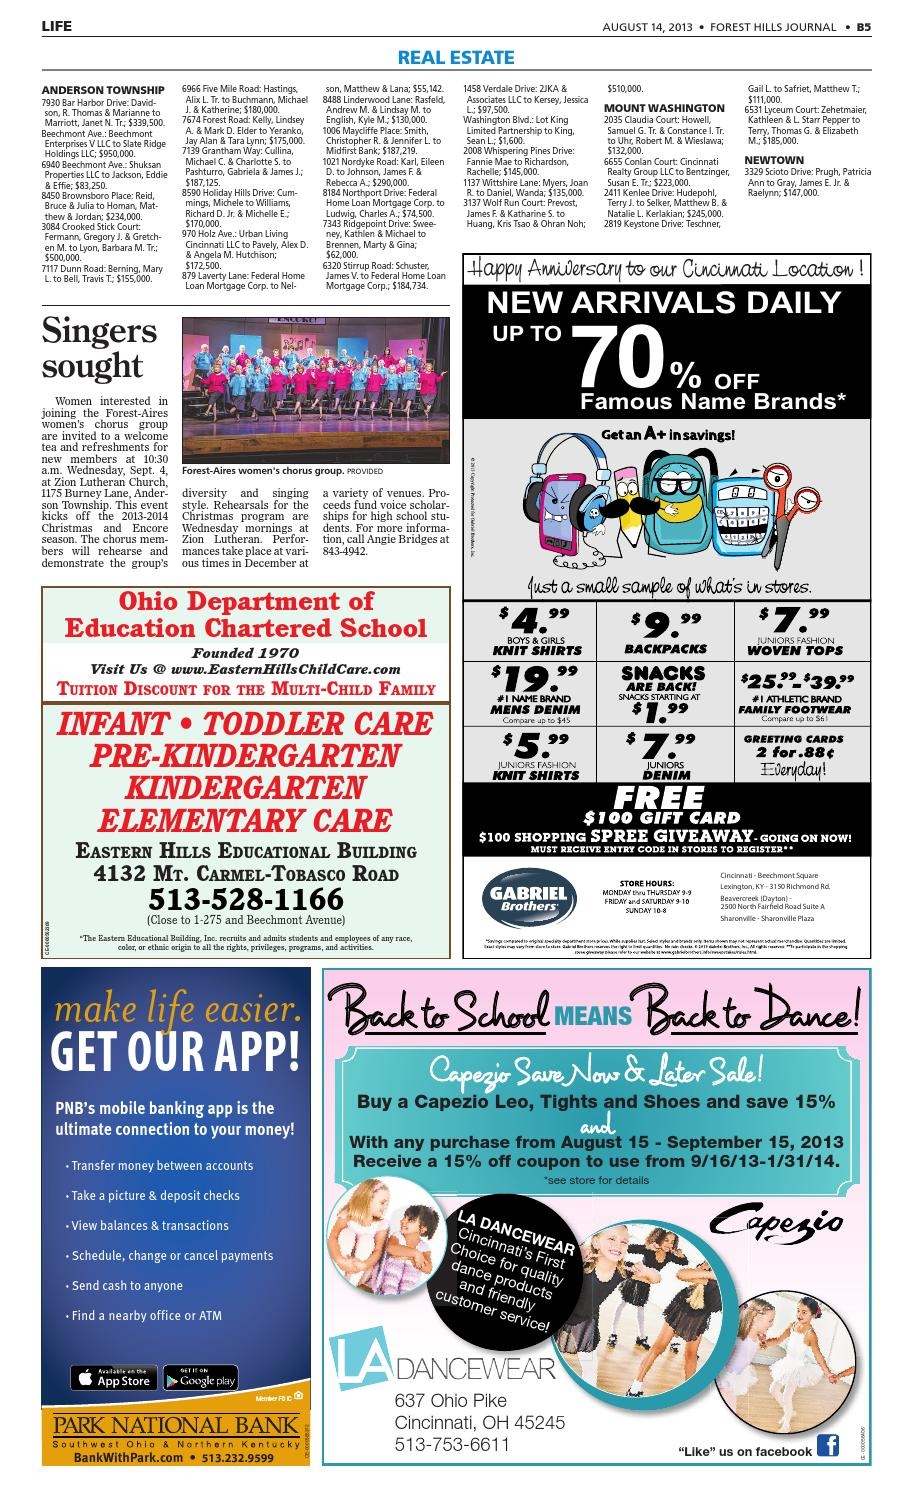 Forest hills journal 081413 by Enquirer Media - issuu